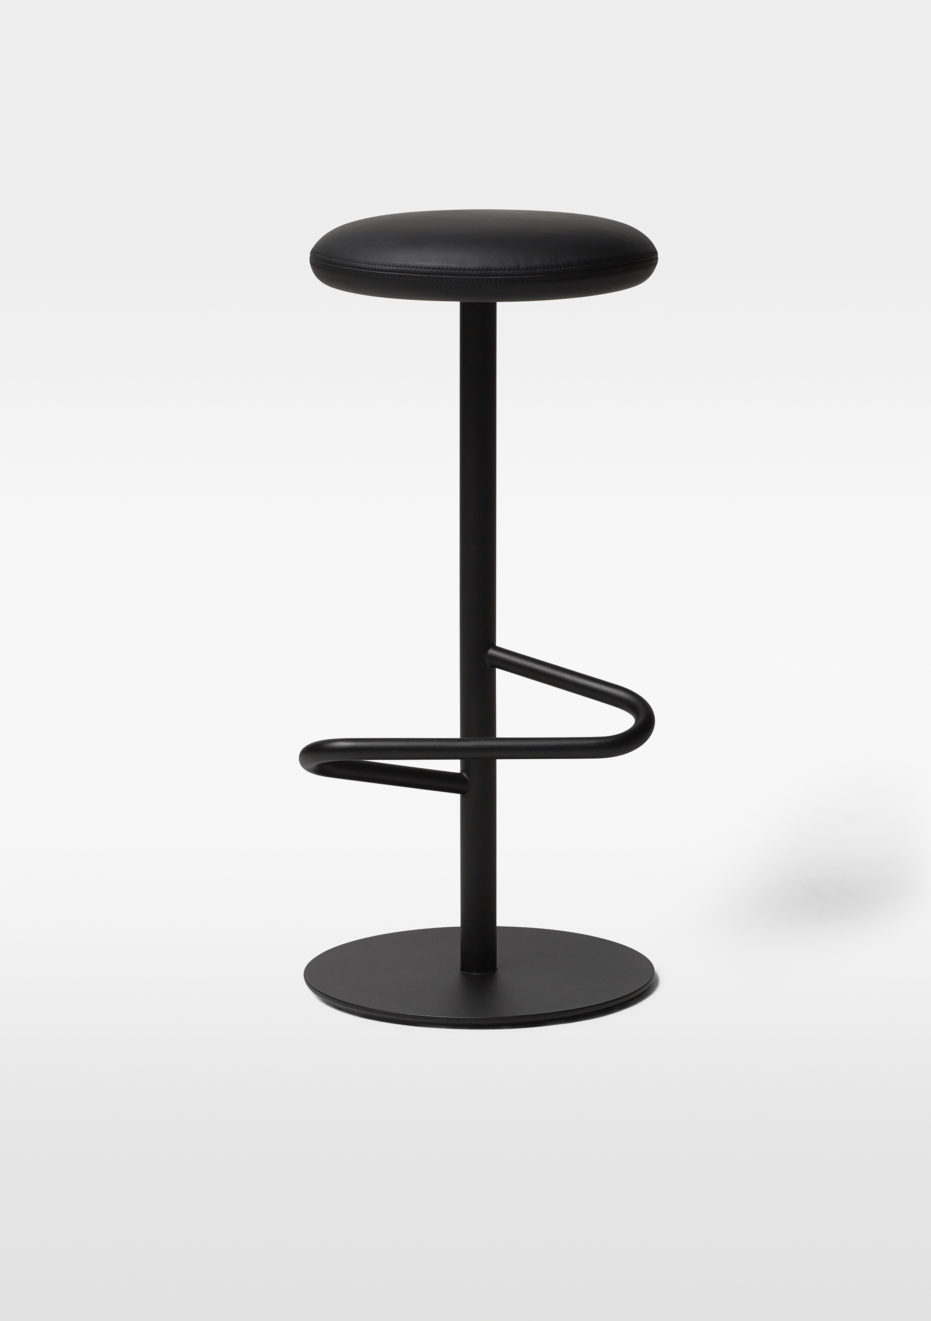 Odette Stool / MASSPRODUCTIONS Product Link SPEC SHEET - Inquire within - info@smlpond.com